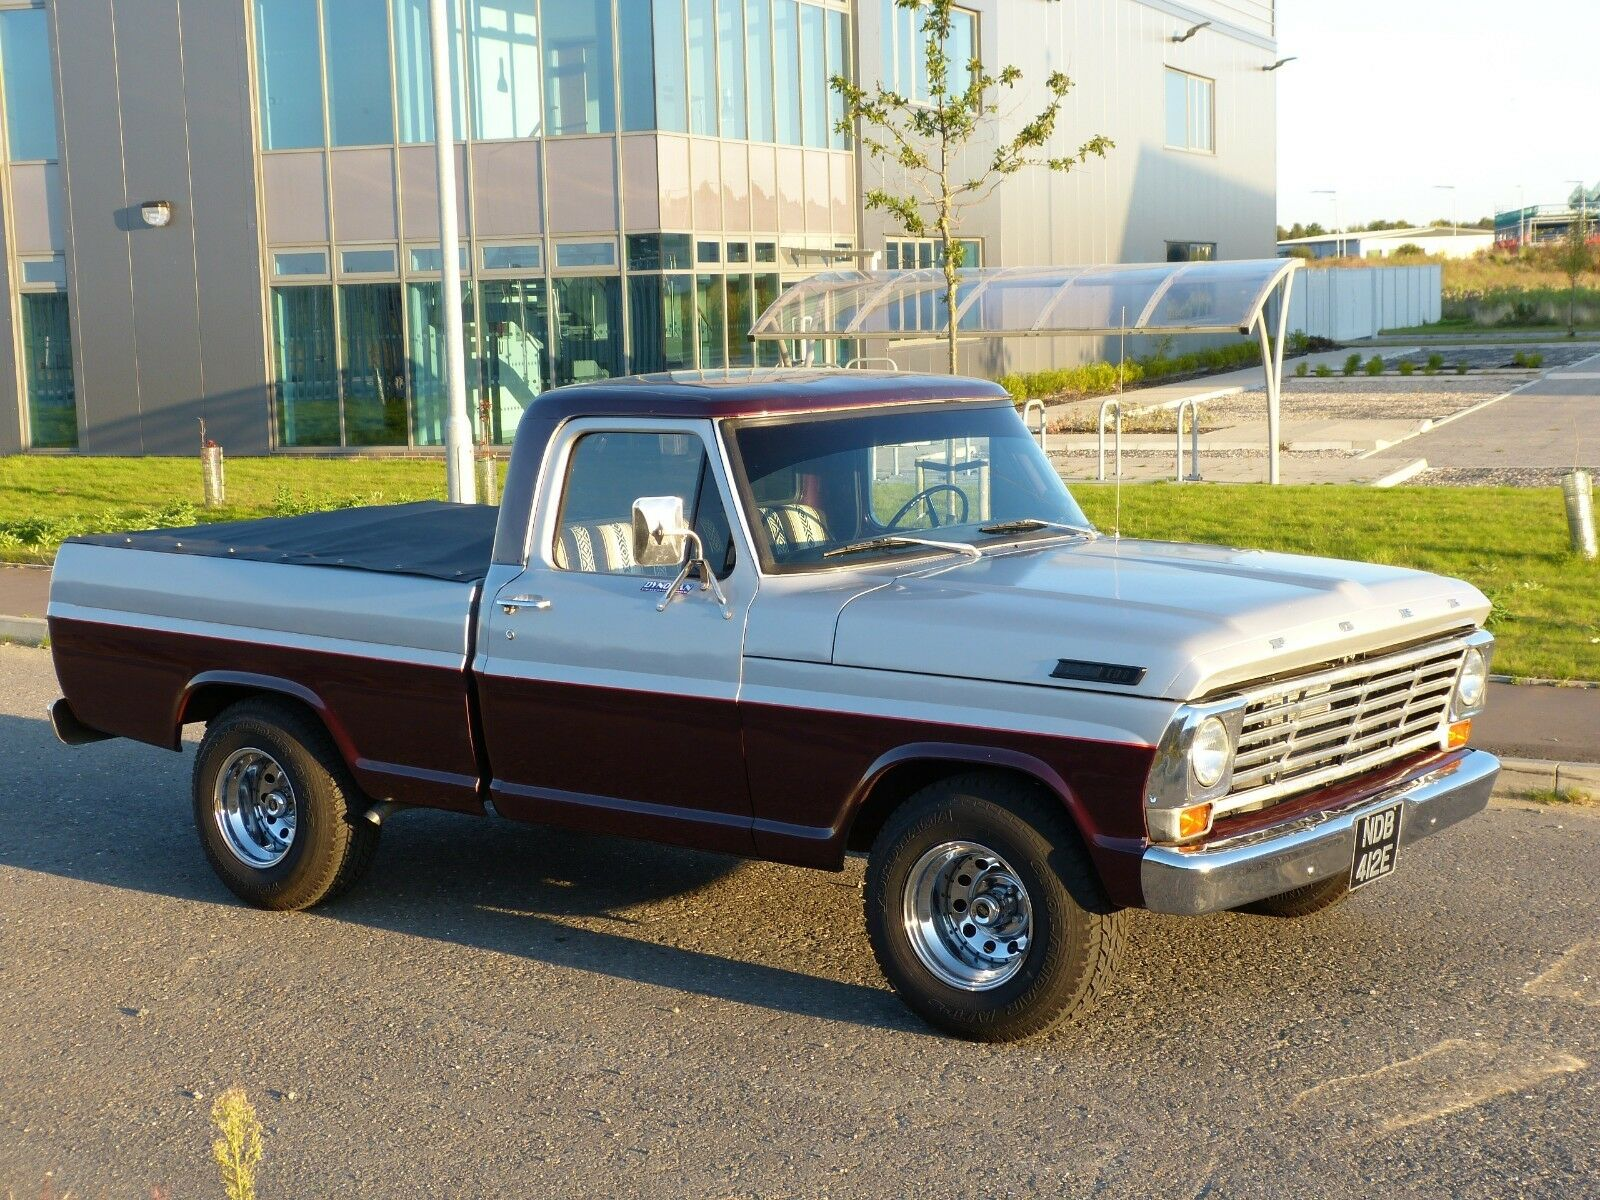 1967 Ford F100 Short Bed 302ci American Pick Up Truck 1099500 1964 1 Of 12 See More